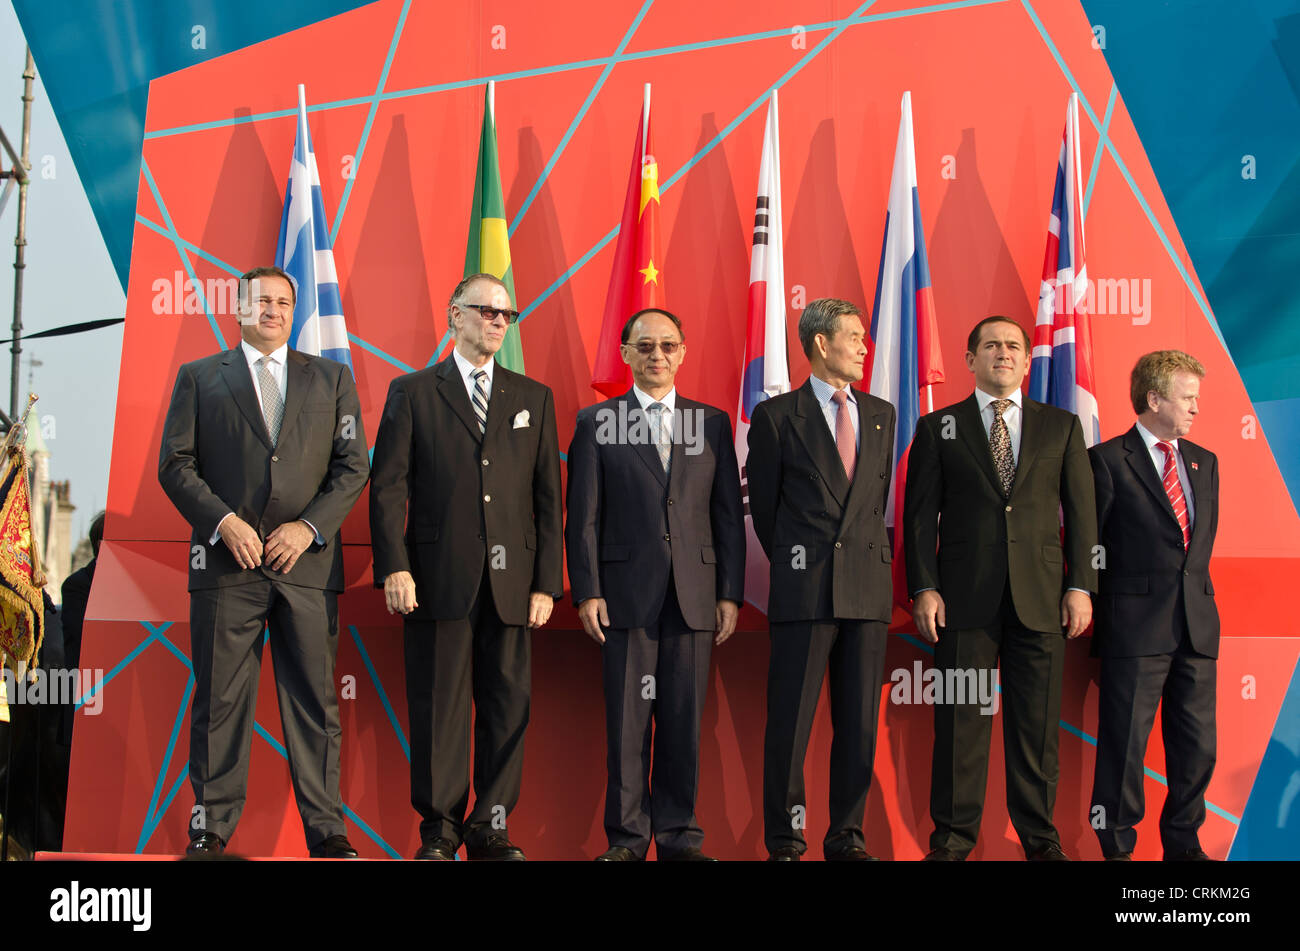 Olympic officials from different countries ' 1 year to go to'  London 2012 Olympics Trafalgar Square - Stock Image